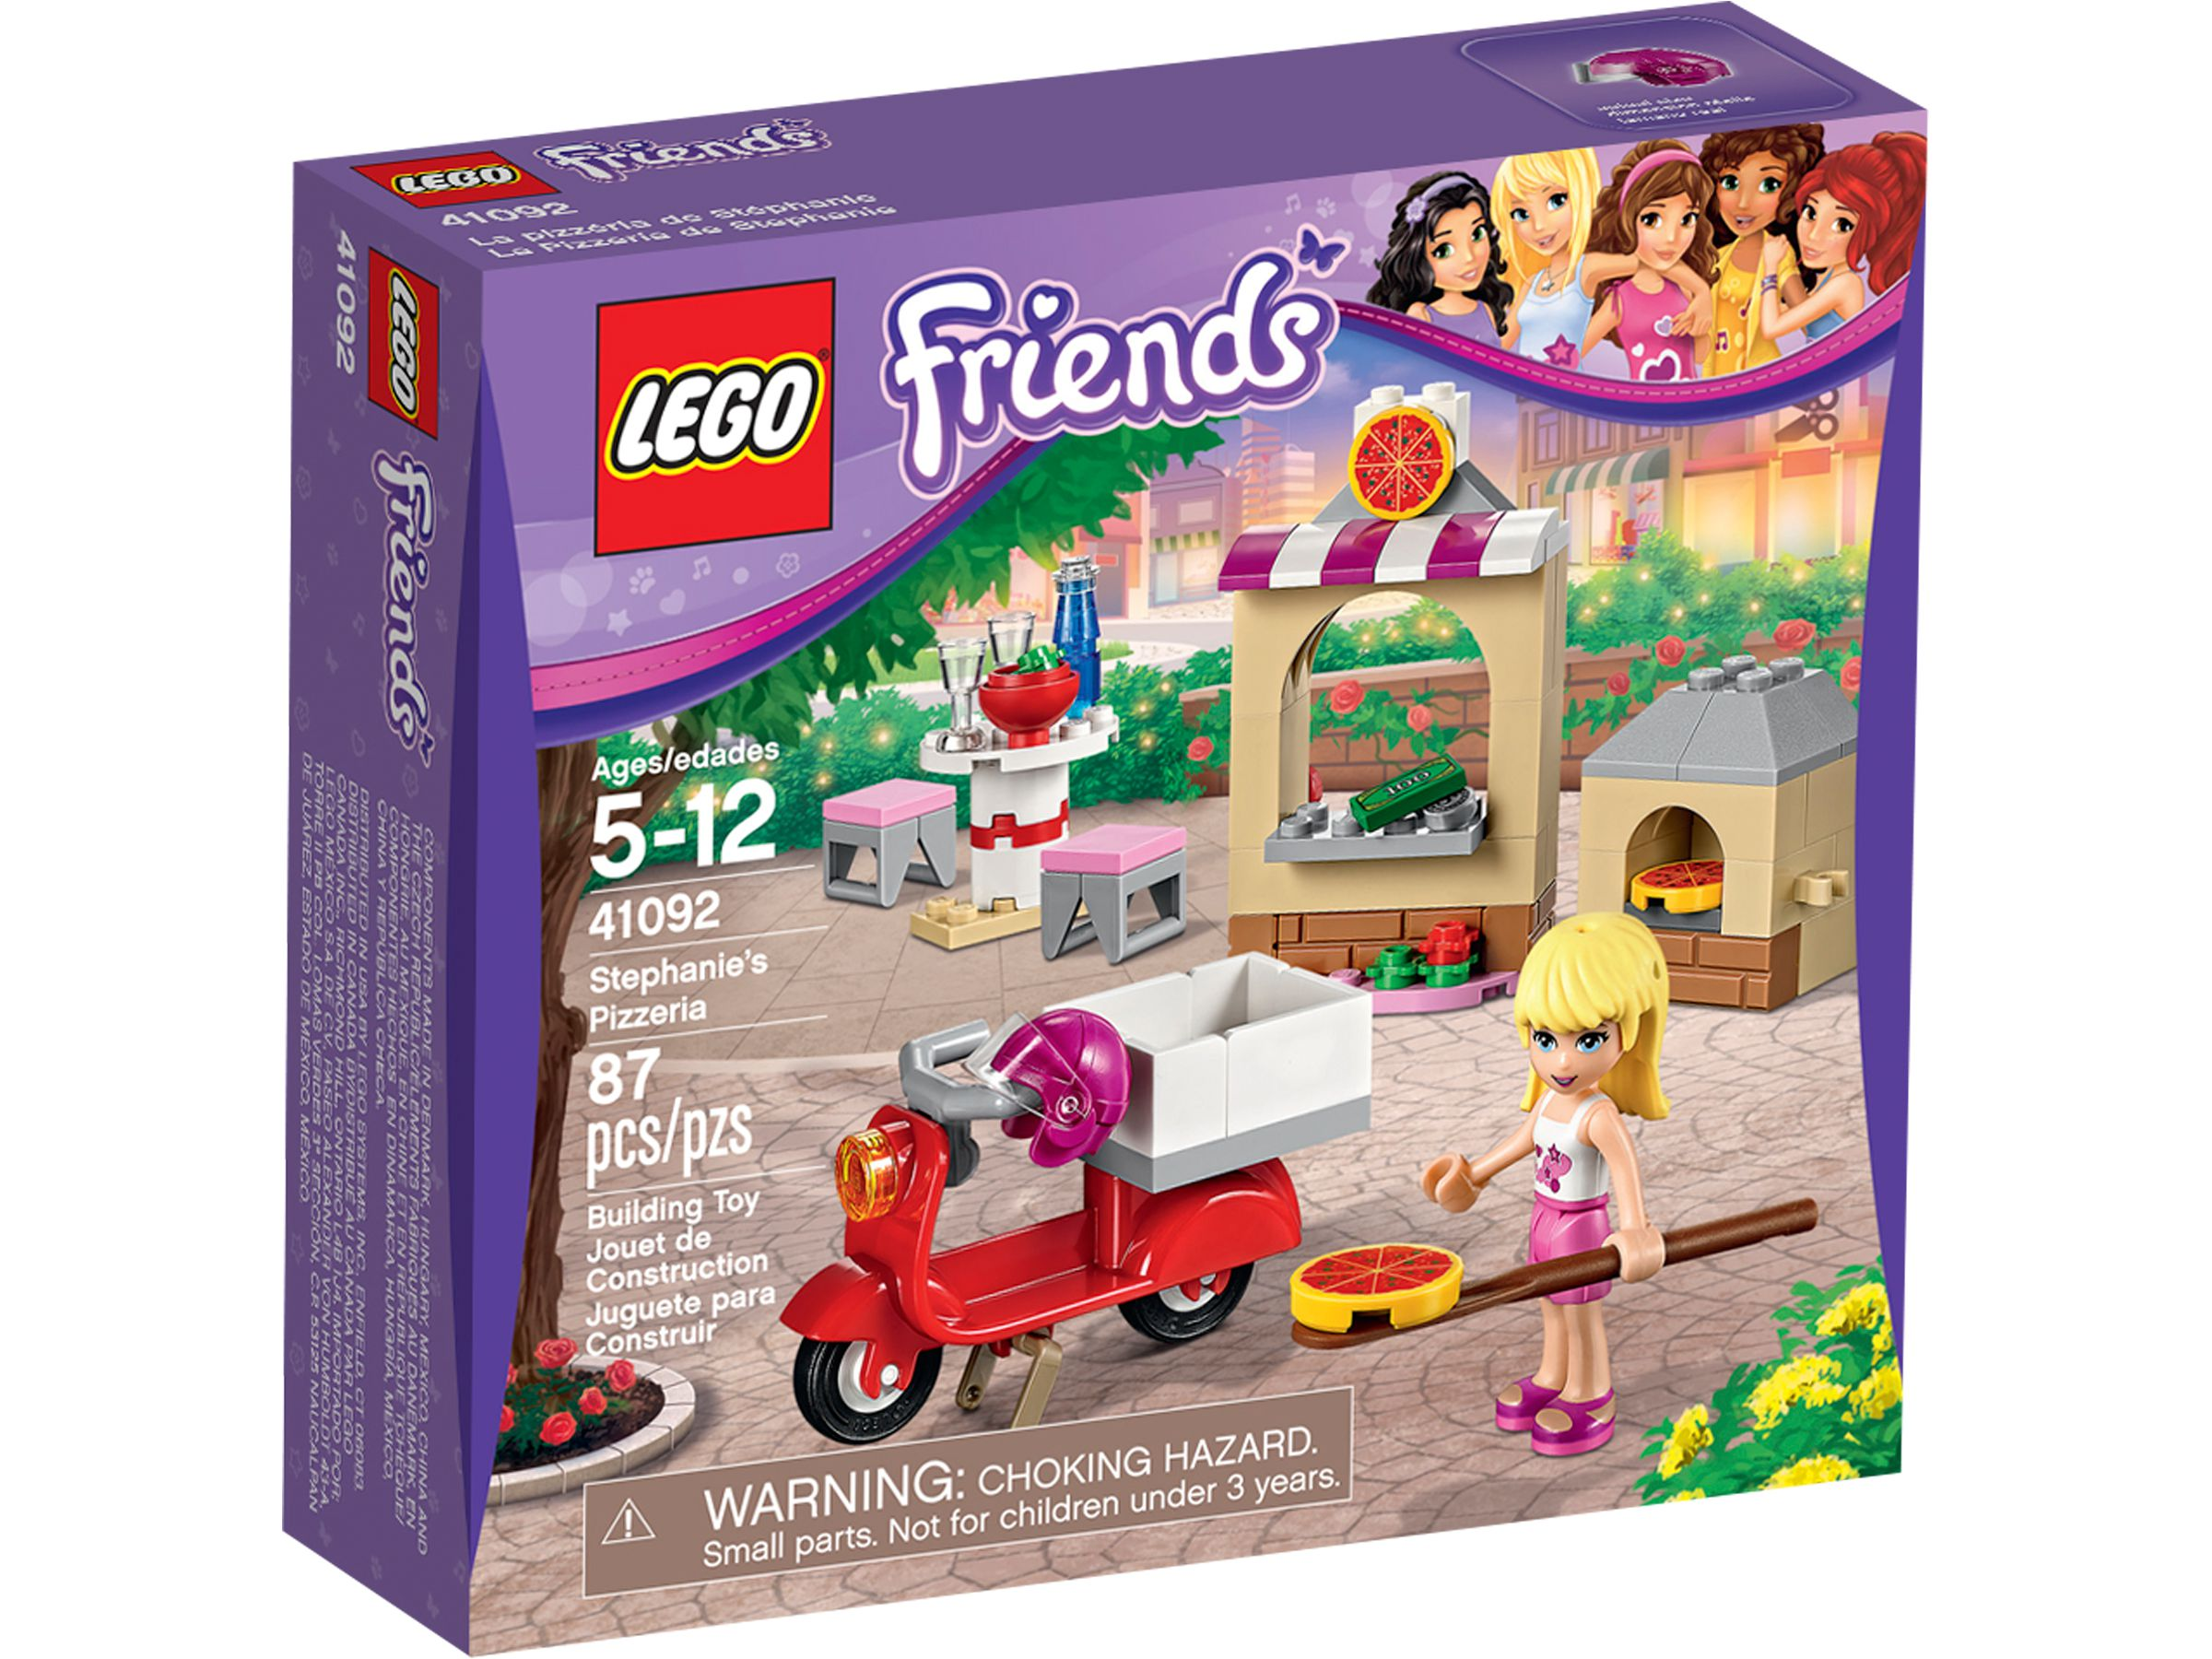 LEGO Friends 41092 Stephanies Pizzeria LEGO_41092_alt1.jpg